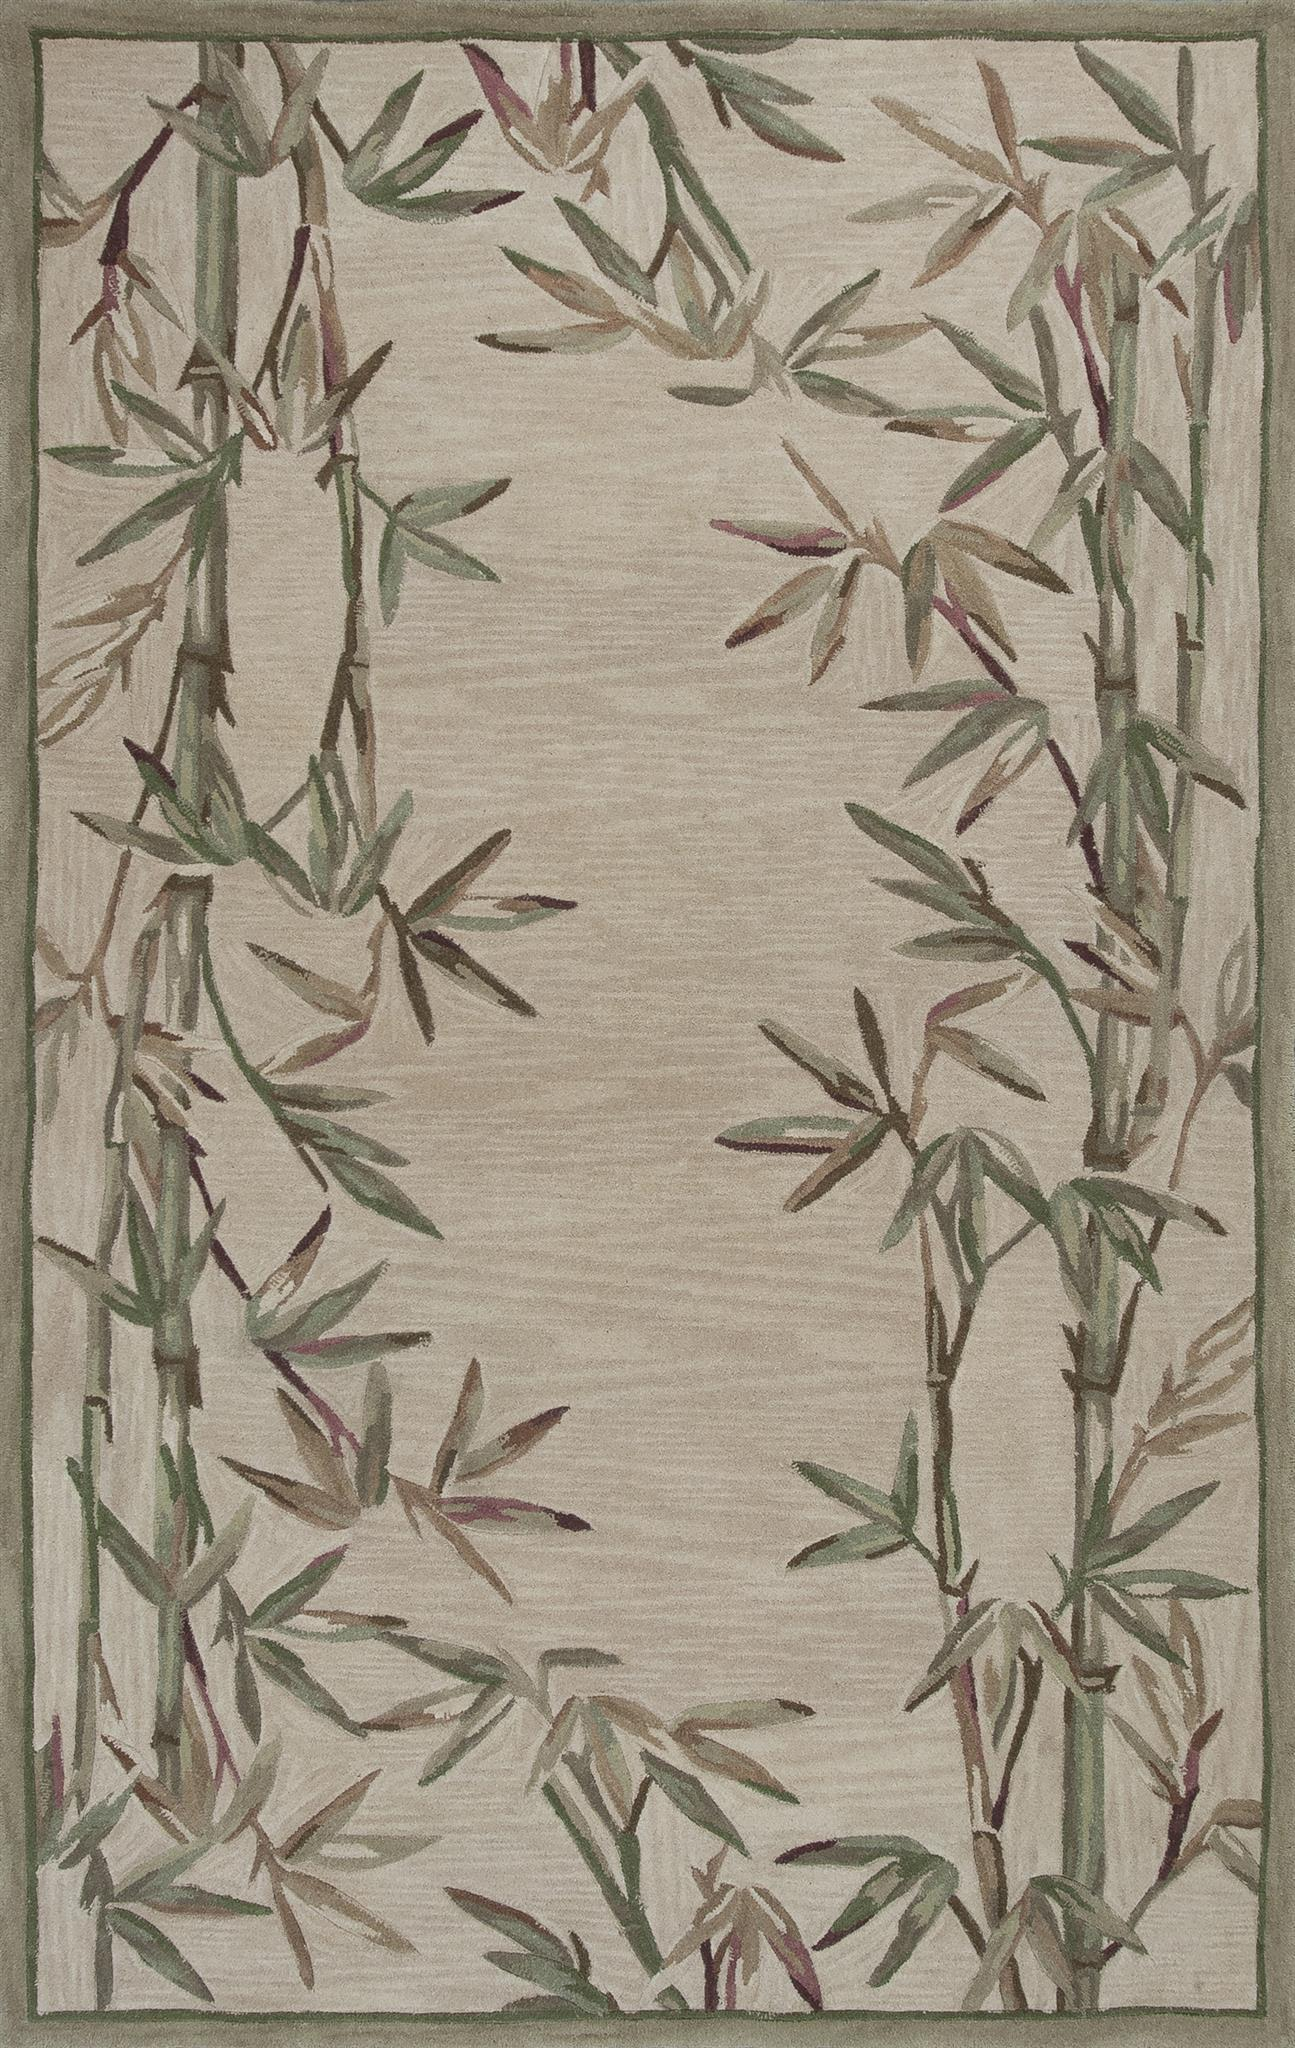 Sparta Bamboo Border 3146 Ivory Rug by Kas